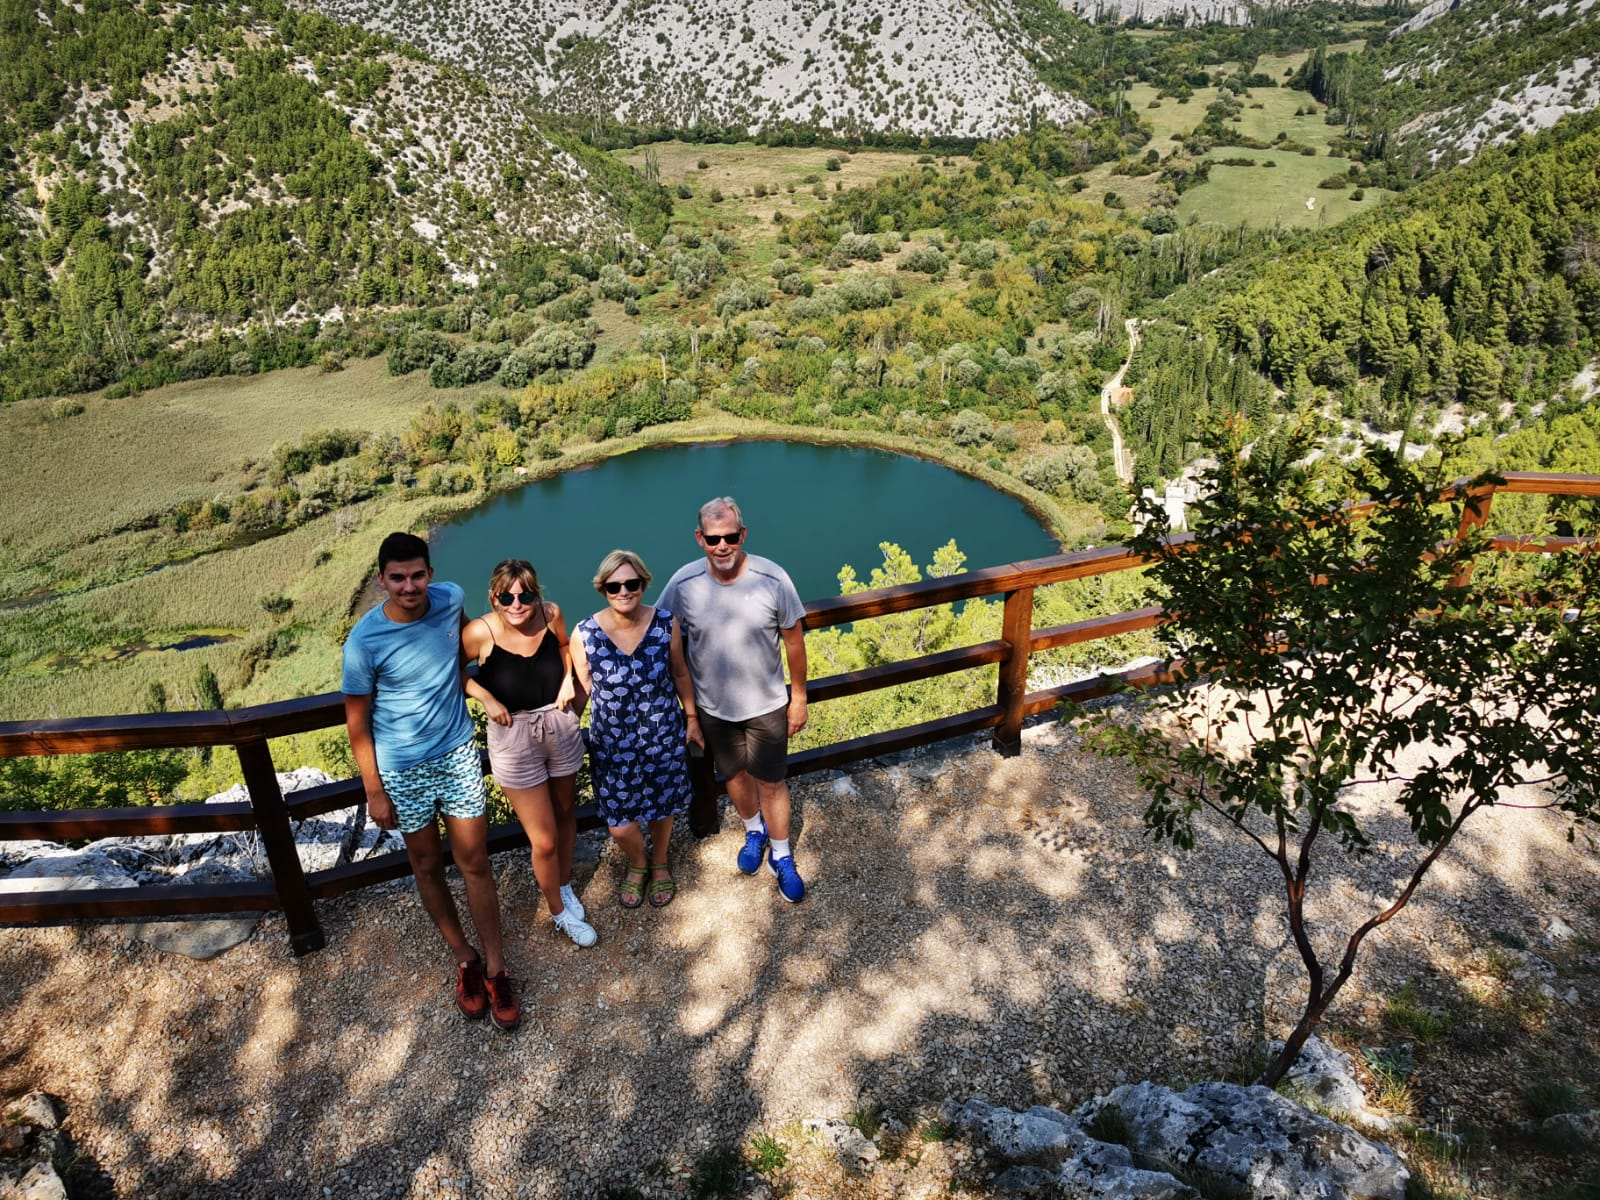 How to get to Krka Waterfalls from Split